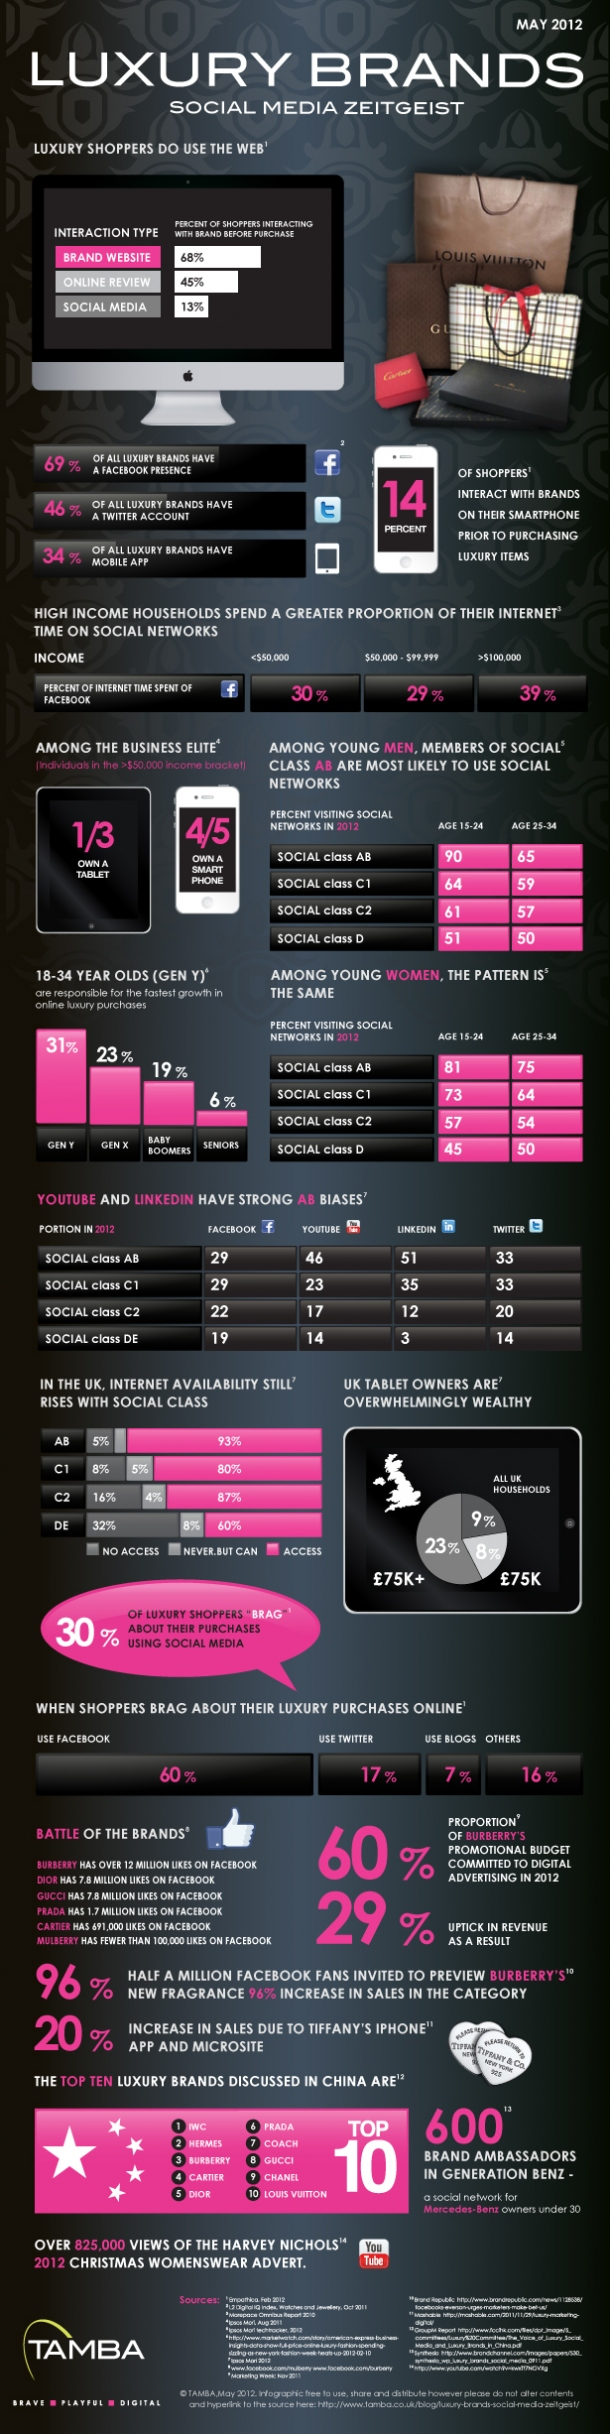 Luxury-Brands-Social-Media-Zeitgeist-infographic